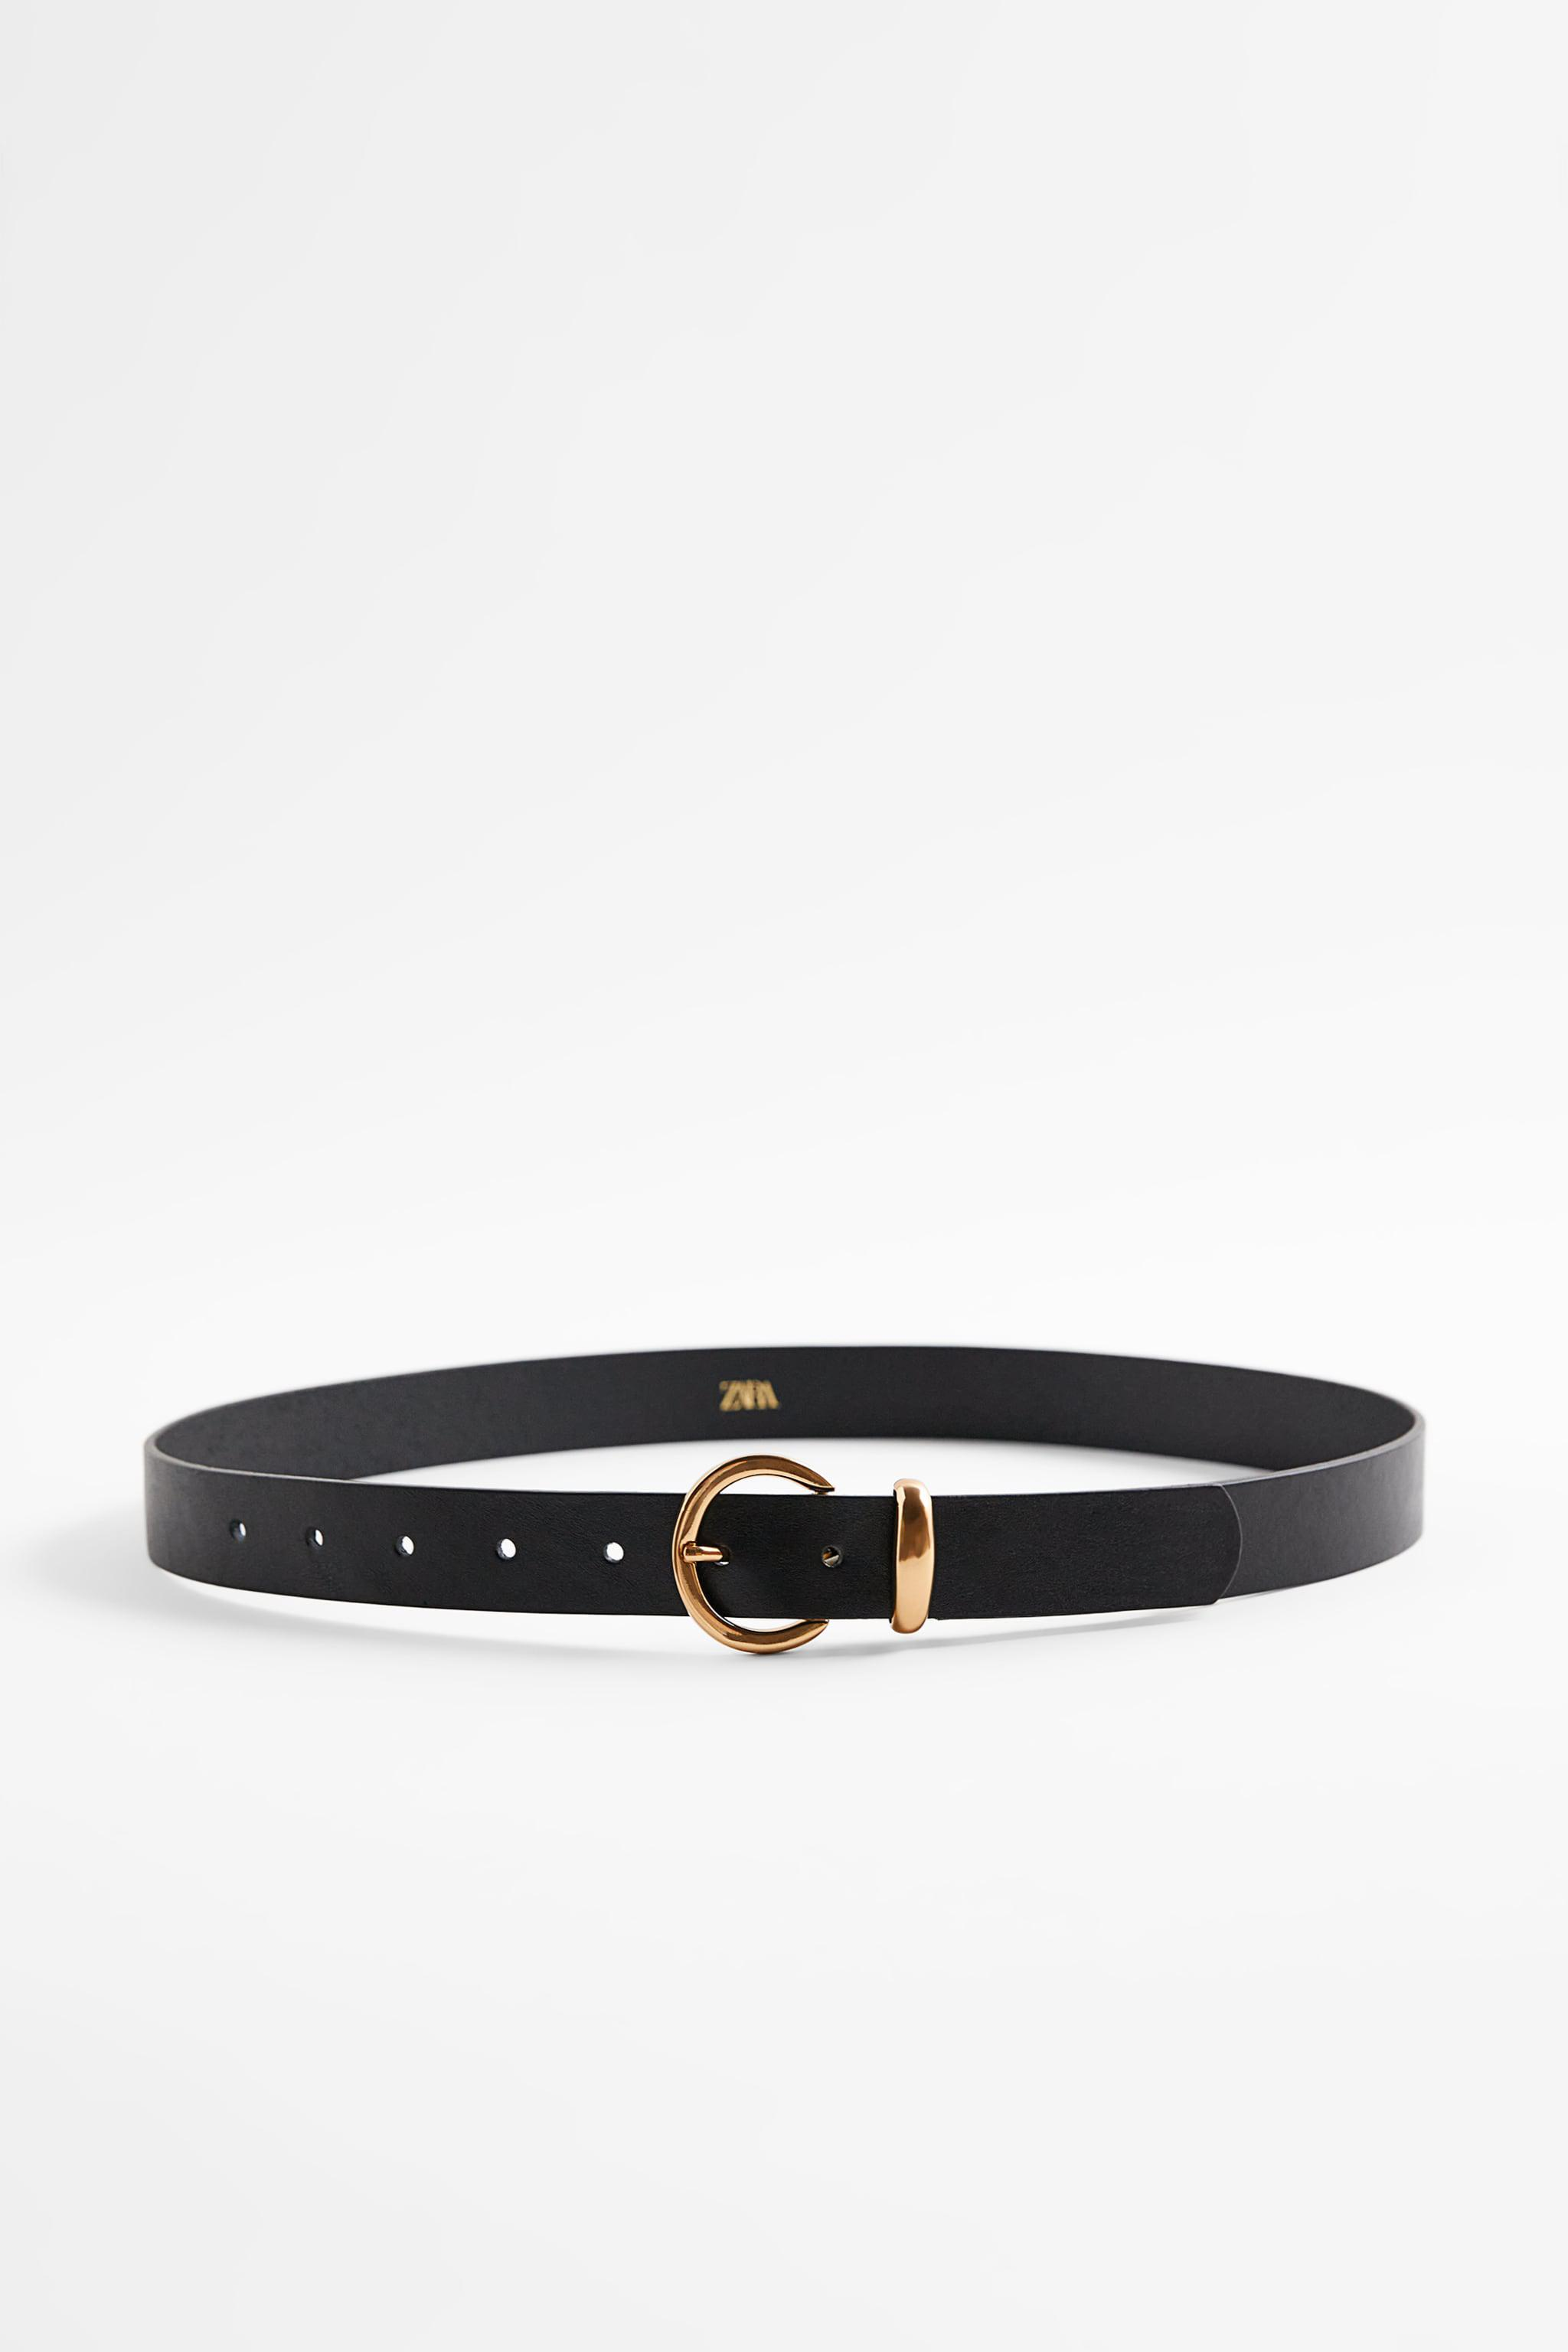 CIRCULAR BUCKLE LEATHER BELT